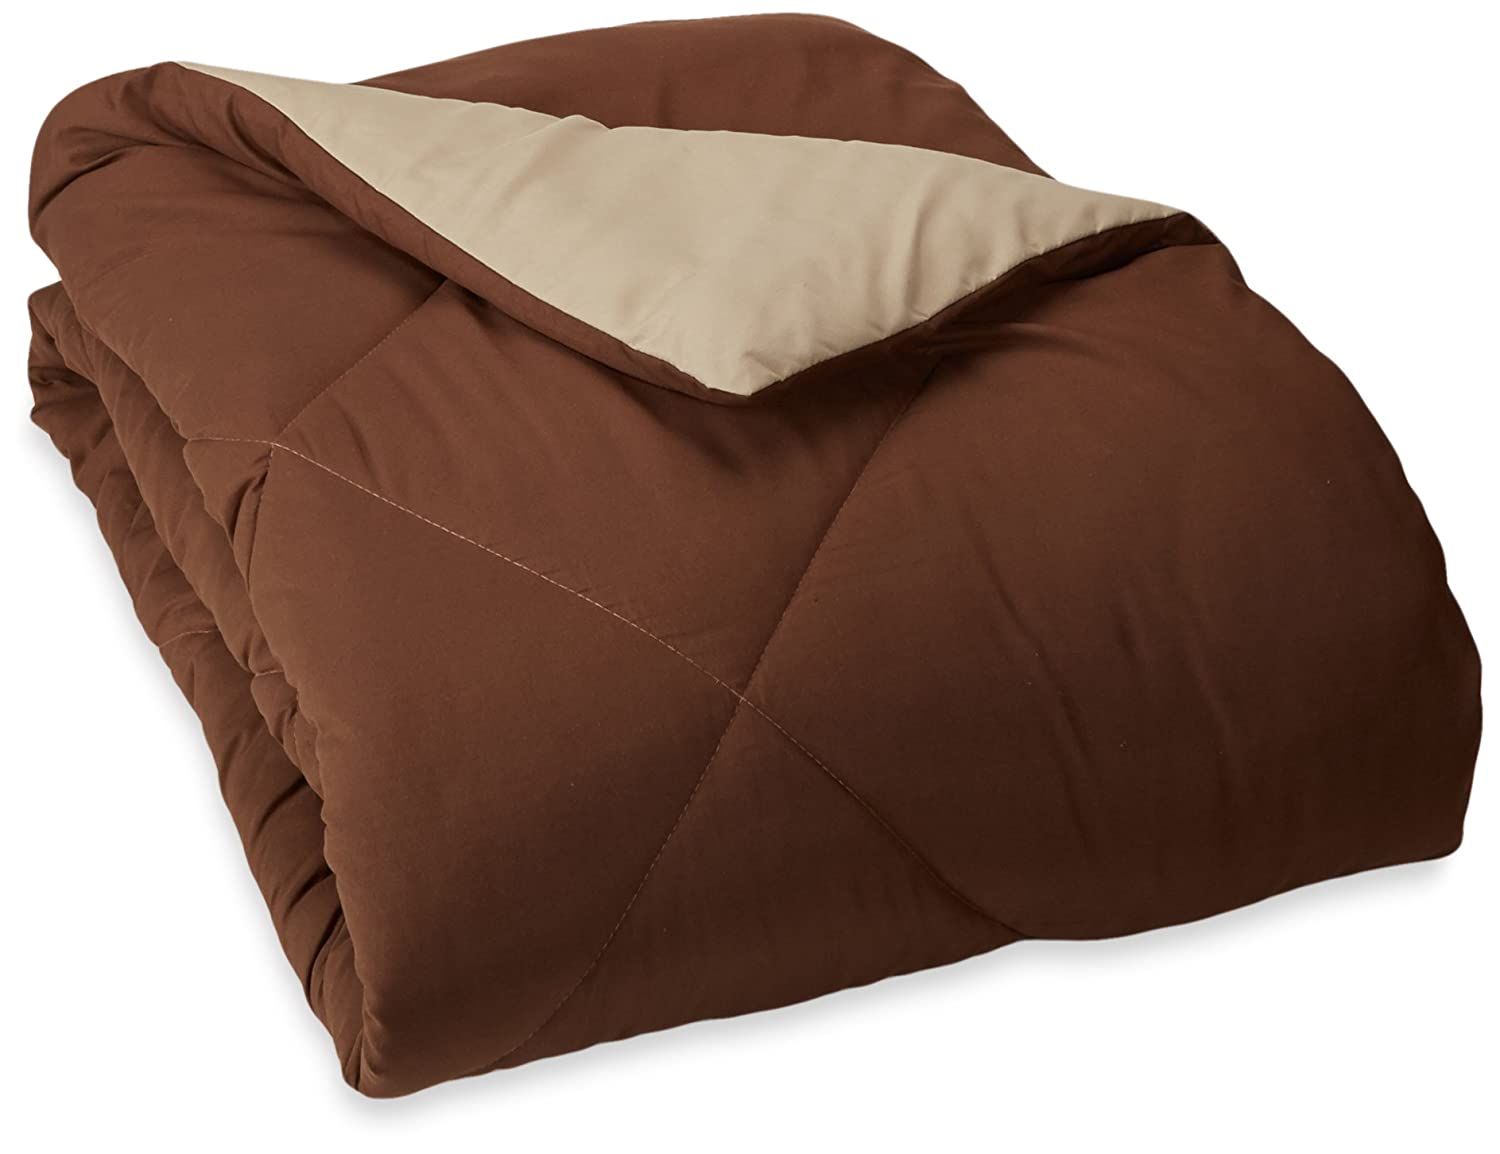 AmazonBasics Reversible Microfiber Comforter - Full/Queen, Chocolate